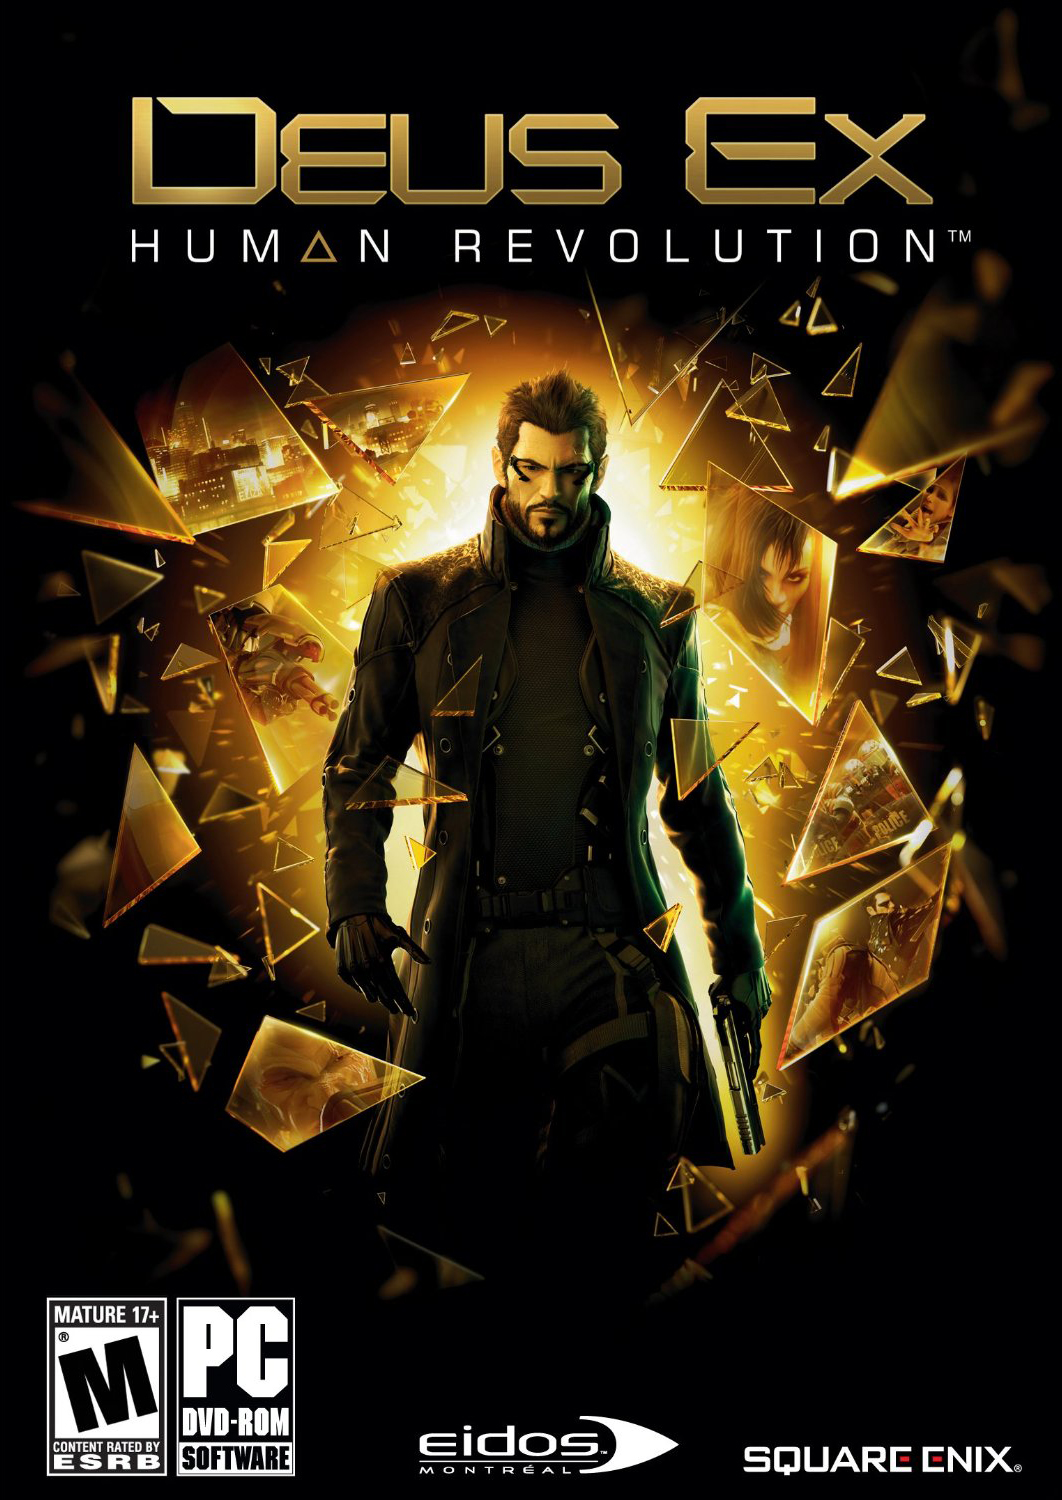 deus ex human revolution box art11 Top 10 Video Game Covers Of 2011